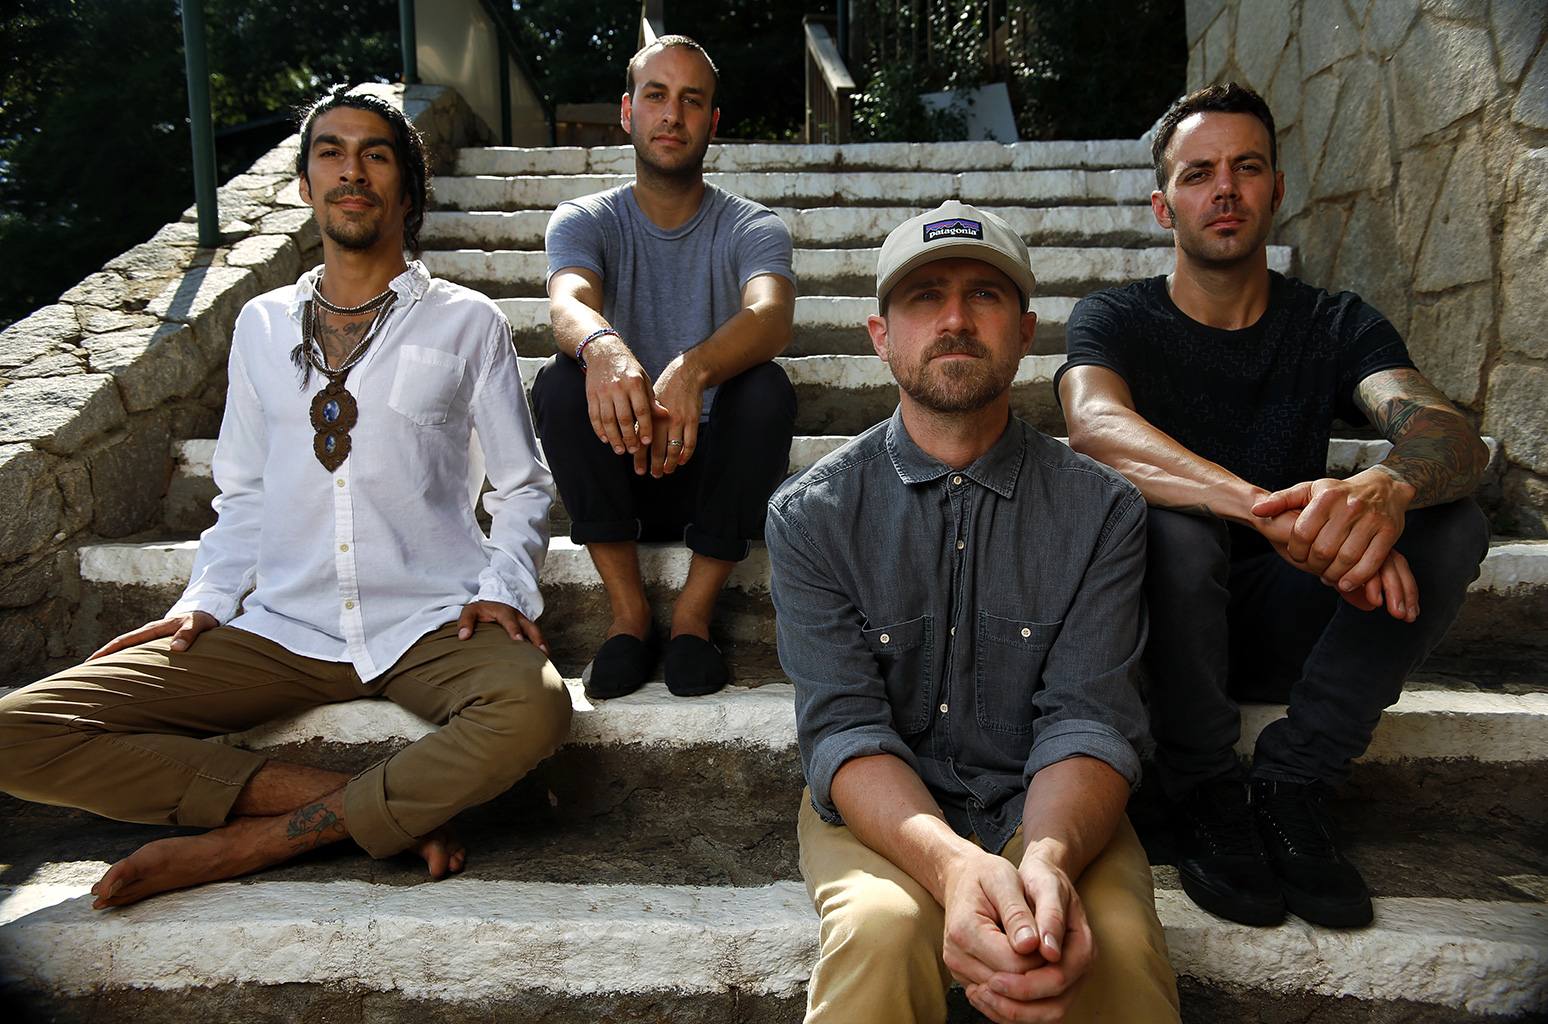 Brand New's Jesse Lacey responds to allegations of sexual misconduct